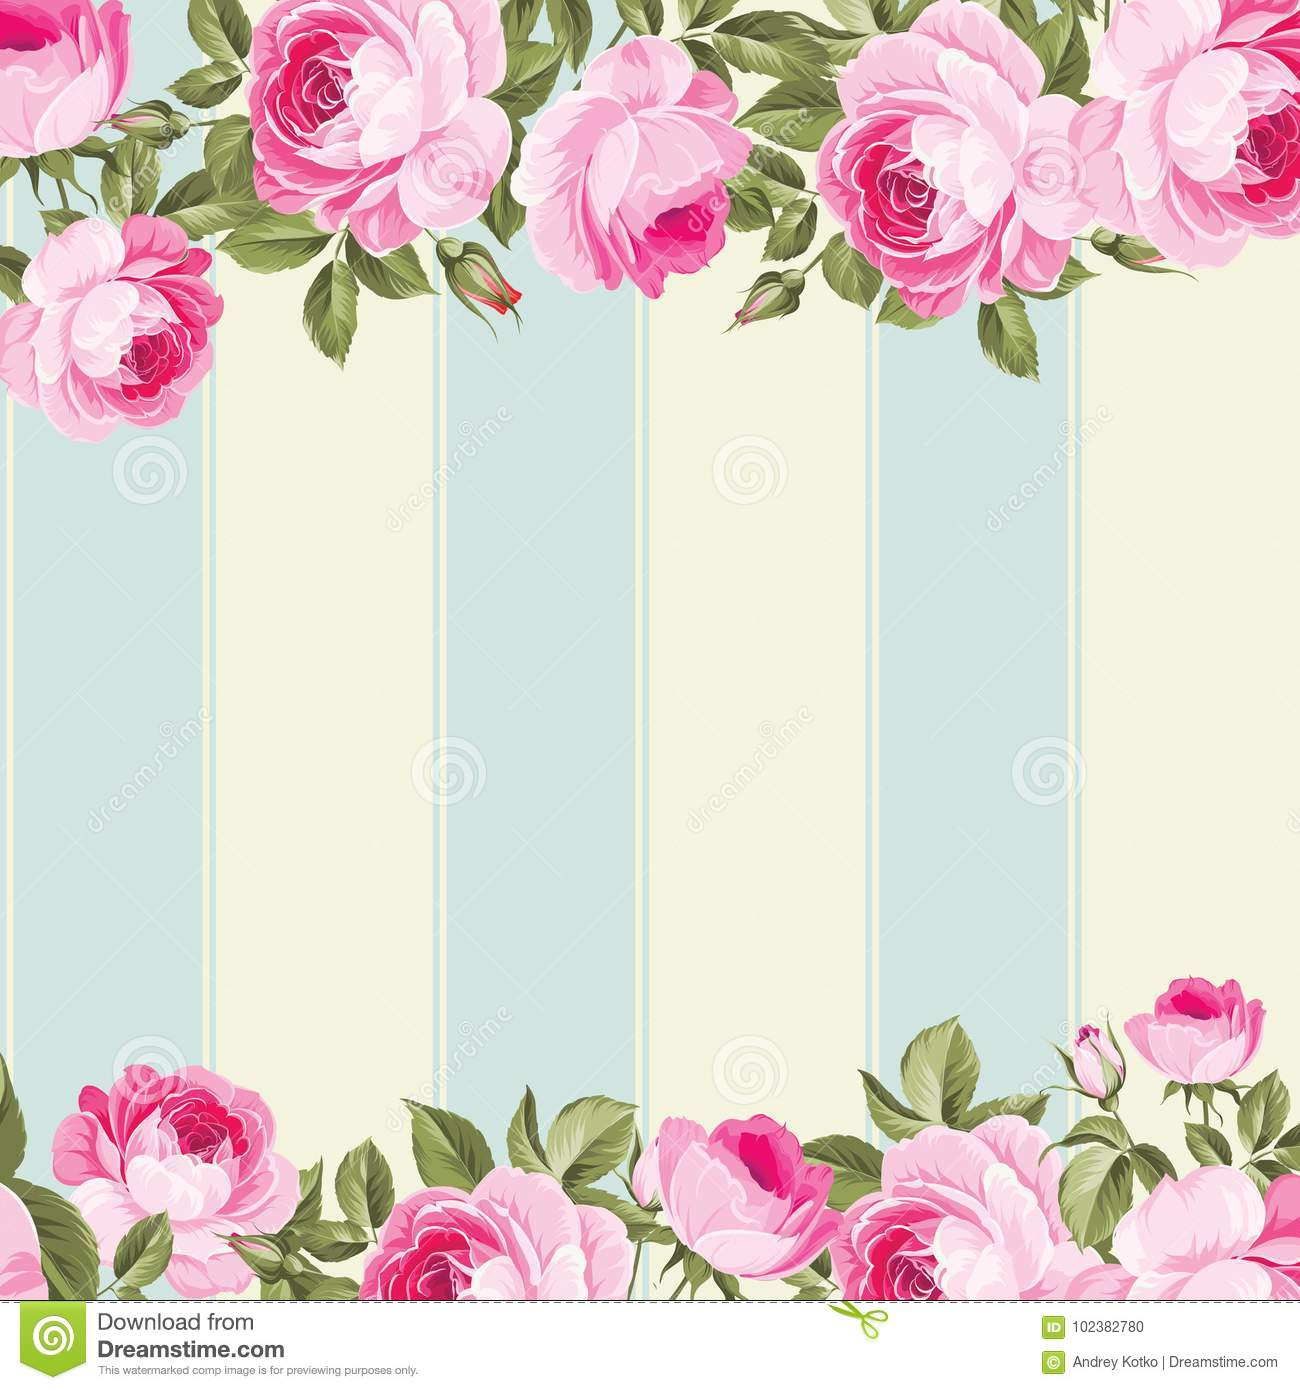 Ornate Pink Flower Border Stock Vector Illustration Of Love